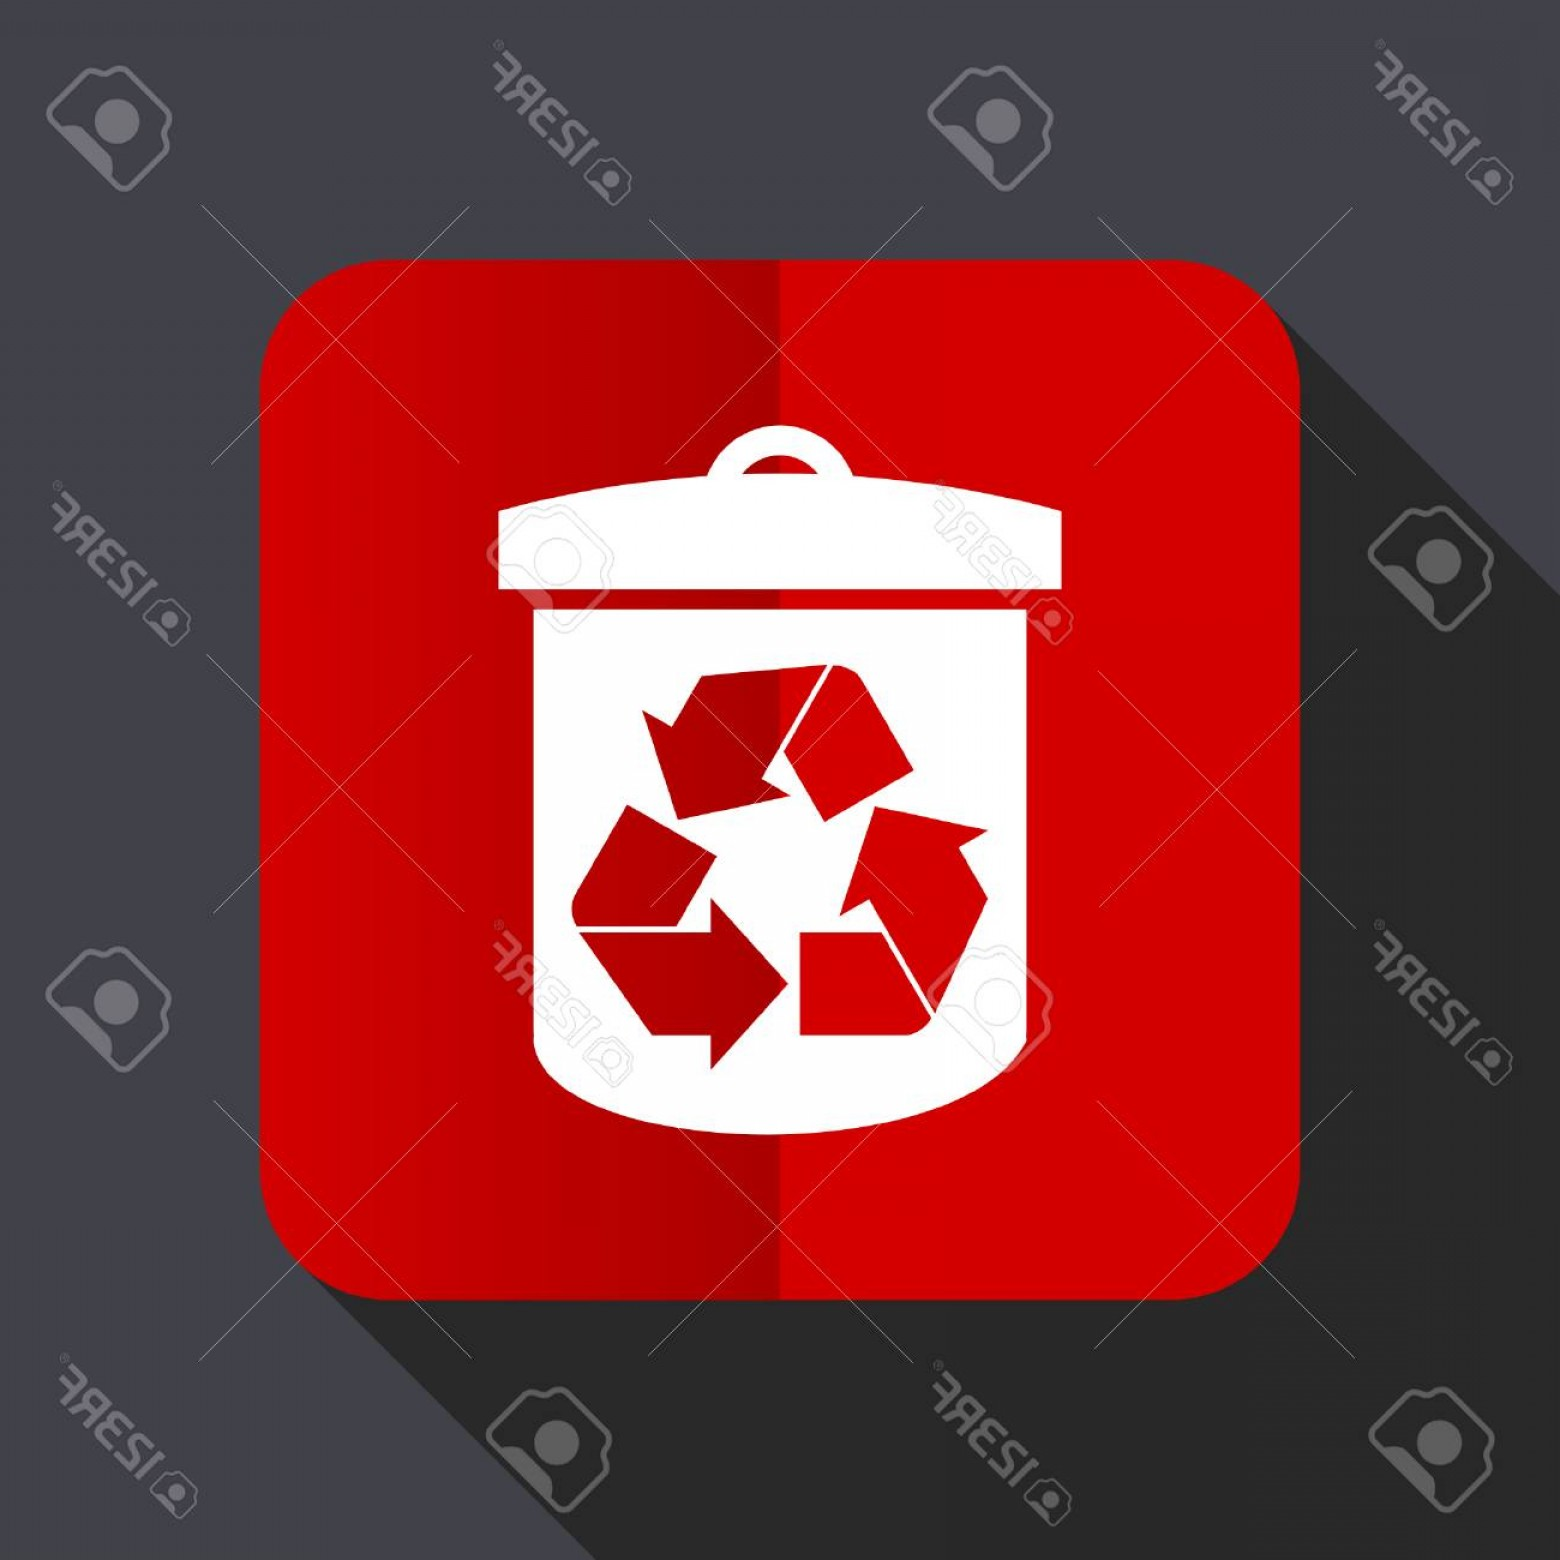 Recycle Icon Vector Red: Photostock Vector Recycle Flat Design Web Vector Red Icon